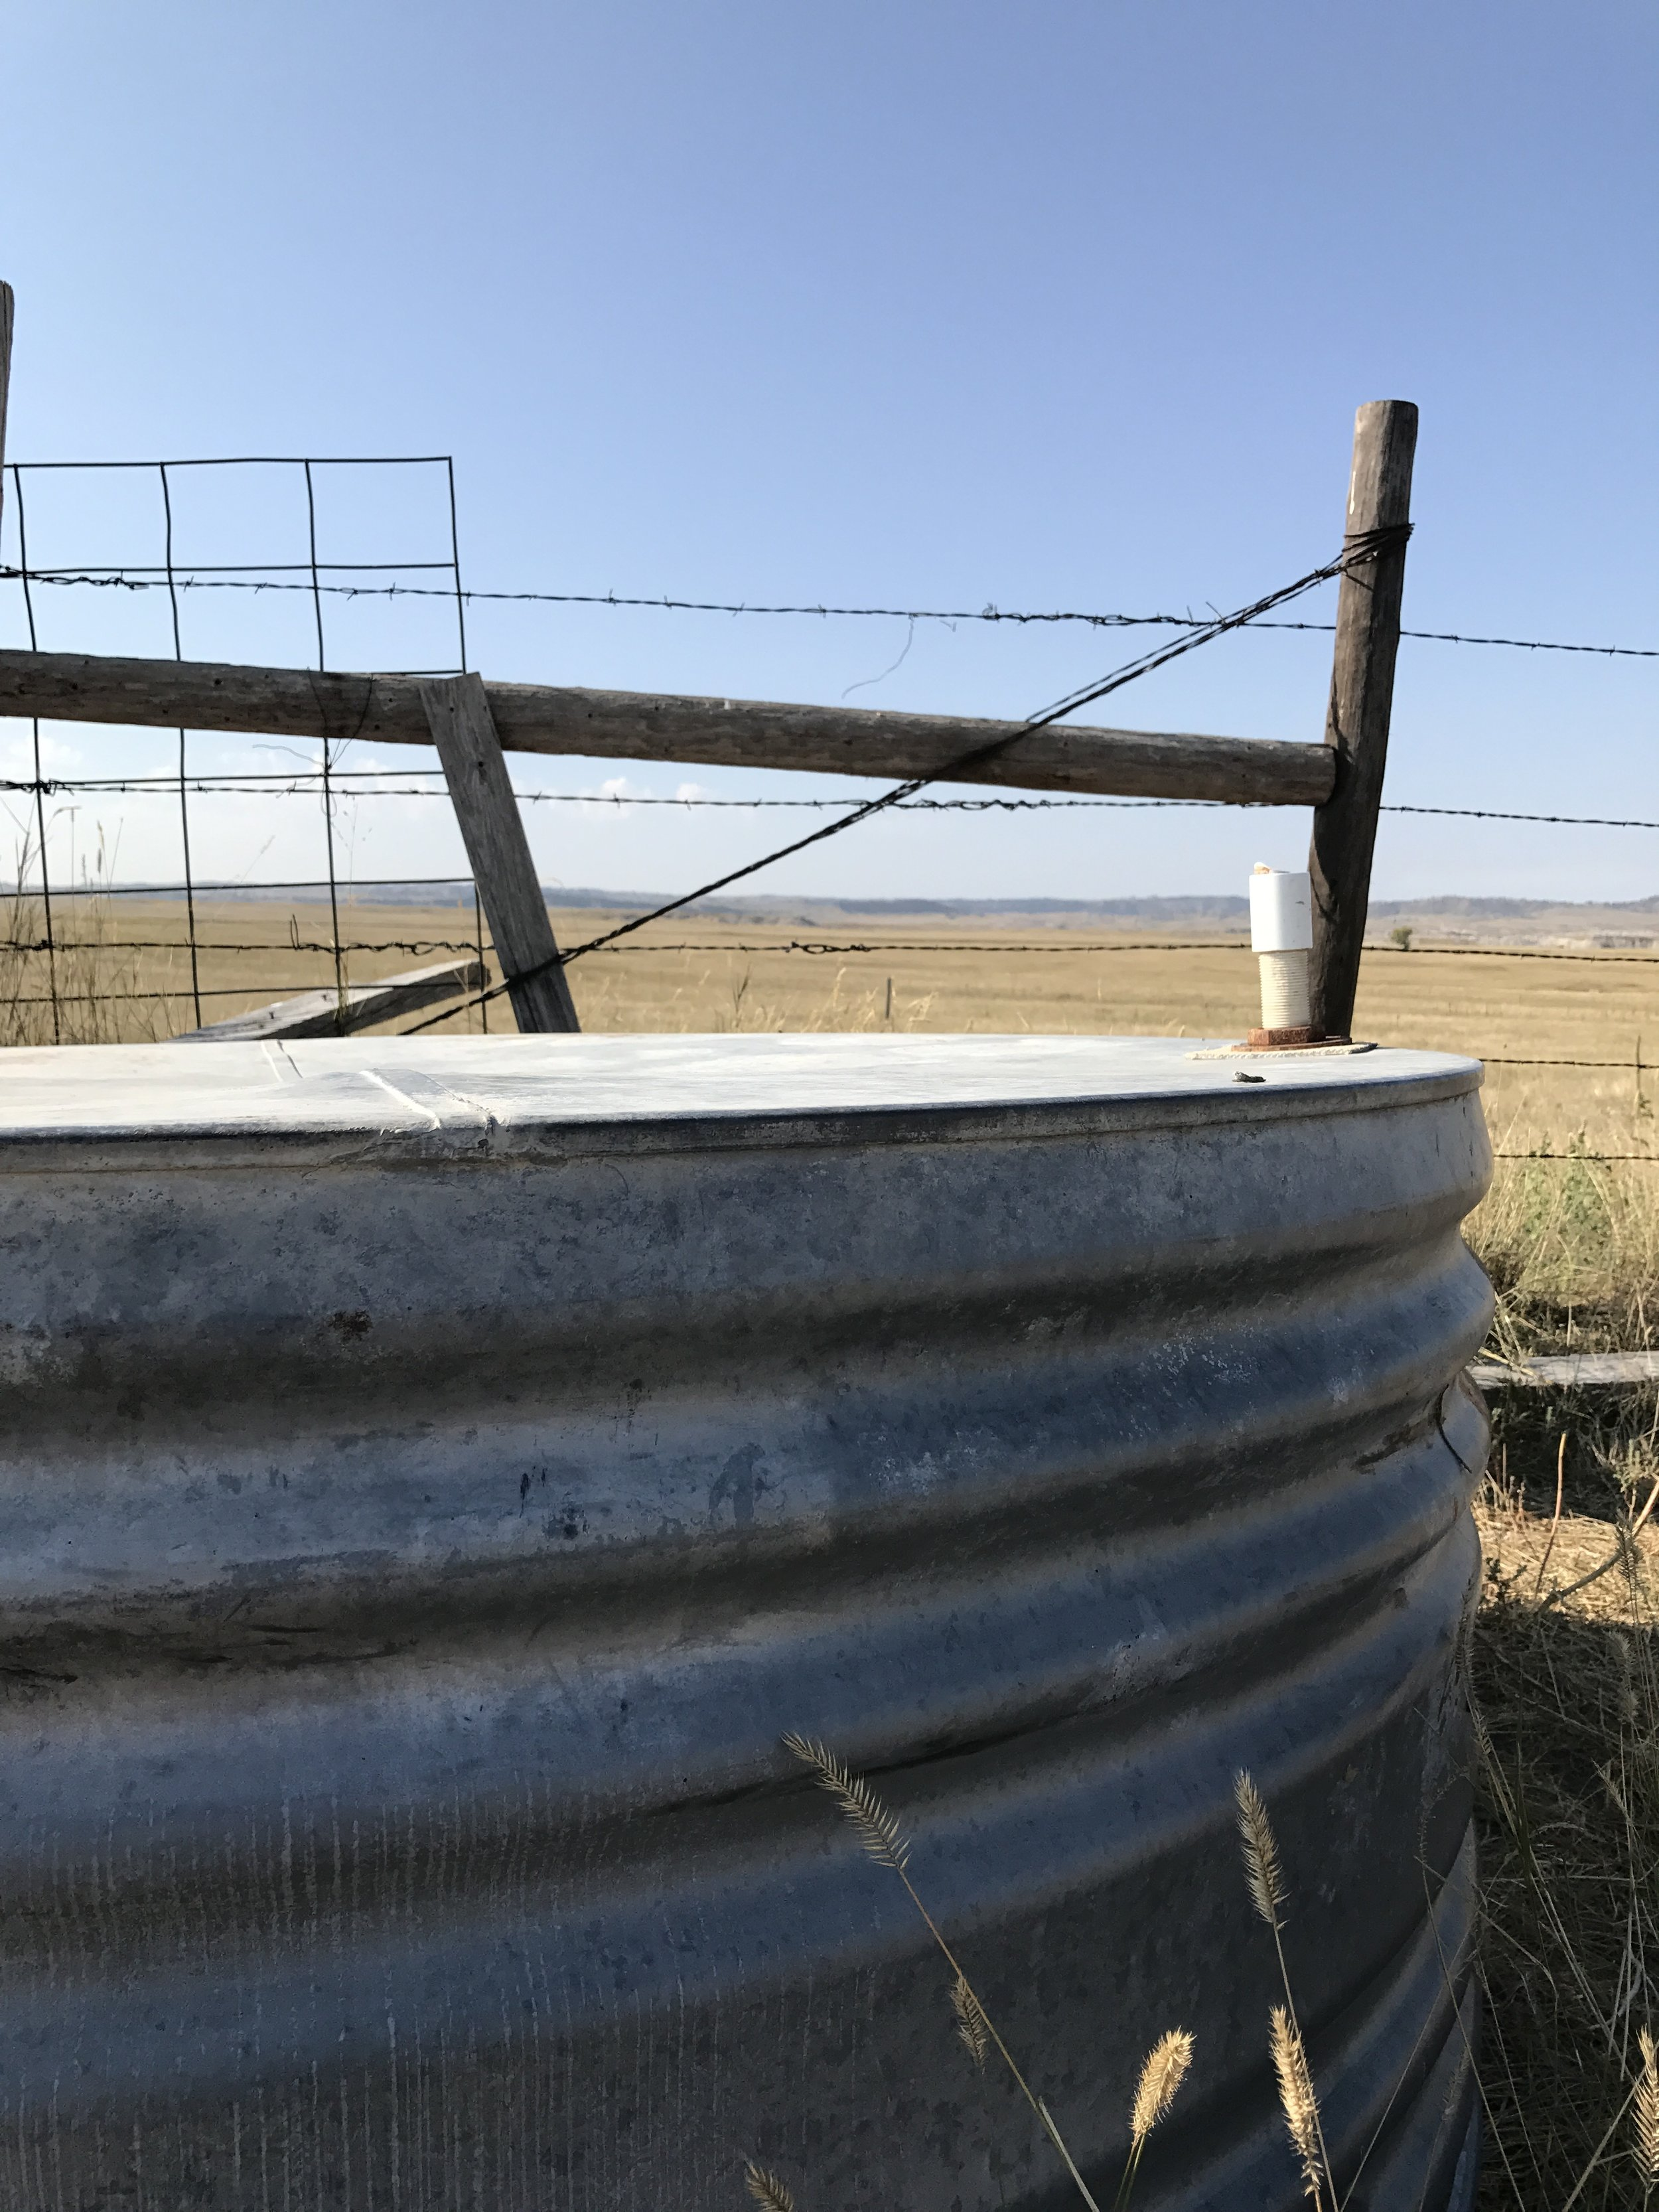 The tin water bin I was hiding behind with the group of antelope bedded down in the field beyond, about 200 yards away.